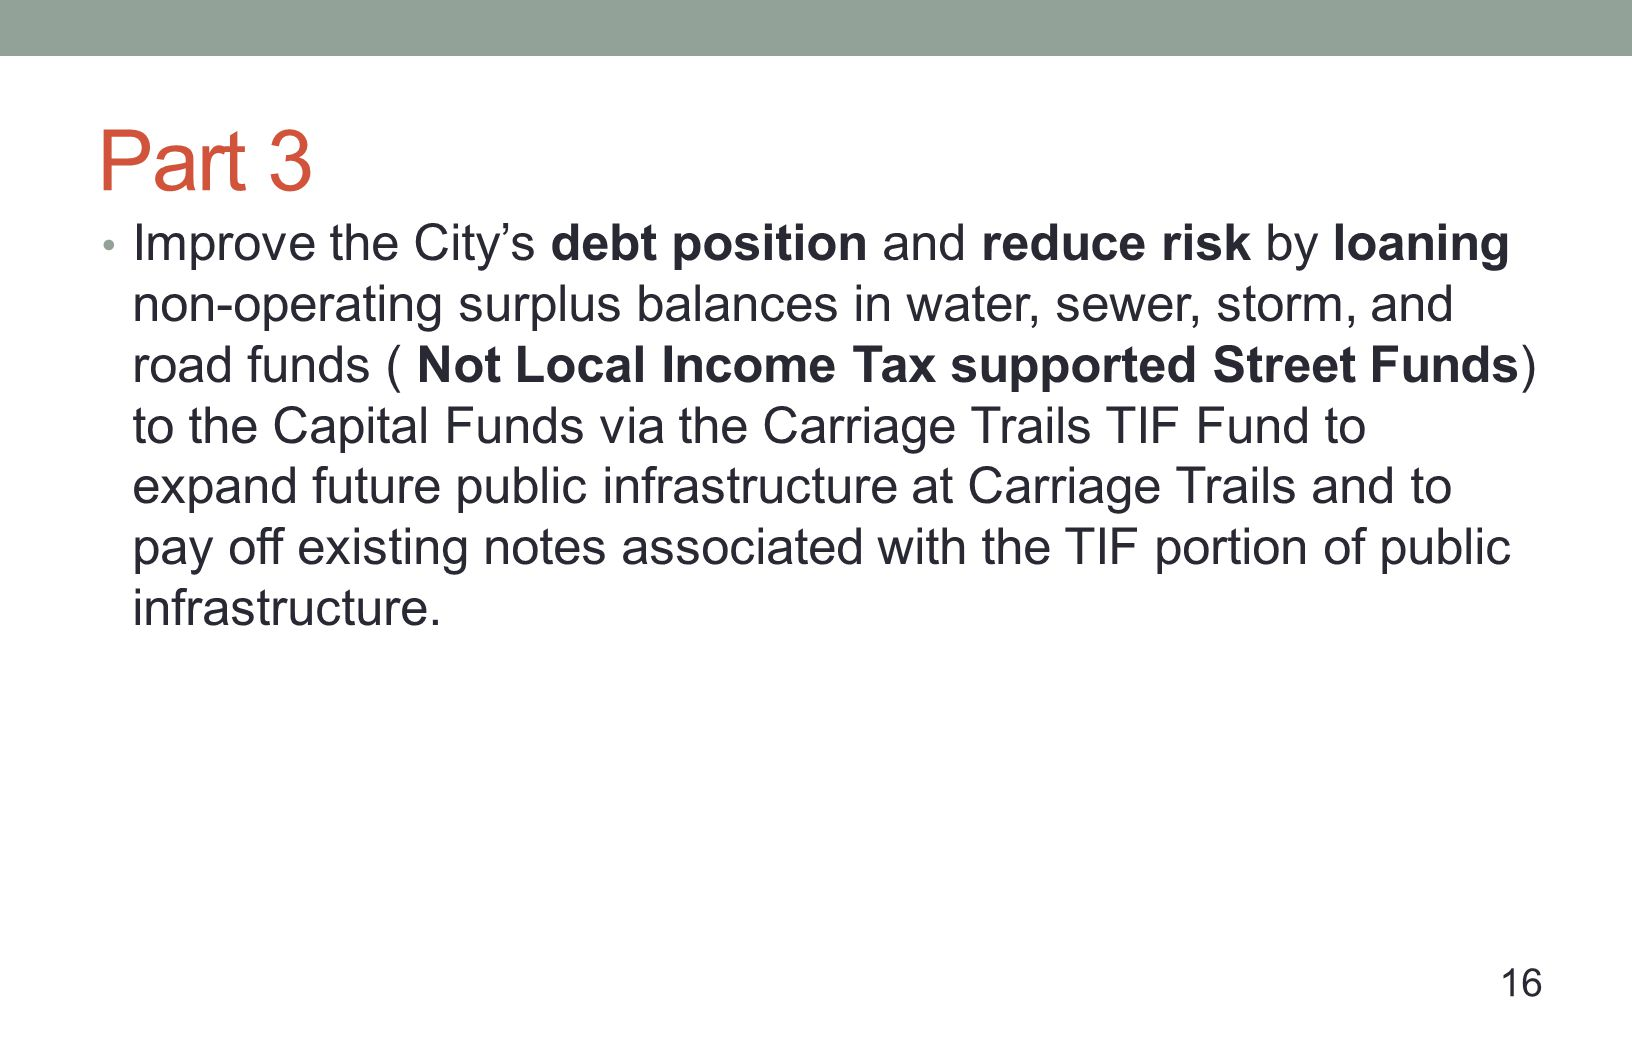 Part 3 Improve the Citys debt position and reduce risk by loaning non-operating surplus balances in water, sewer, storm, and road funds ( Not Local Income Tax supported Street Funds) to the Capital Funds via the Carriage Trails TIF Fund to expand future public infrastructure at Carriage Trails and to pay off existing notes associated with the TIF portion of public infrastructure.